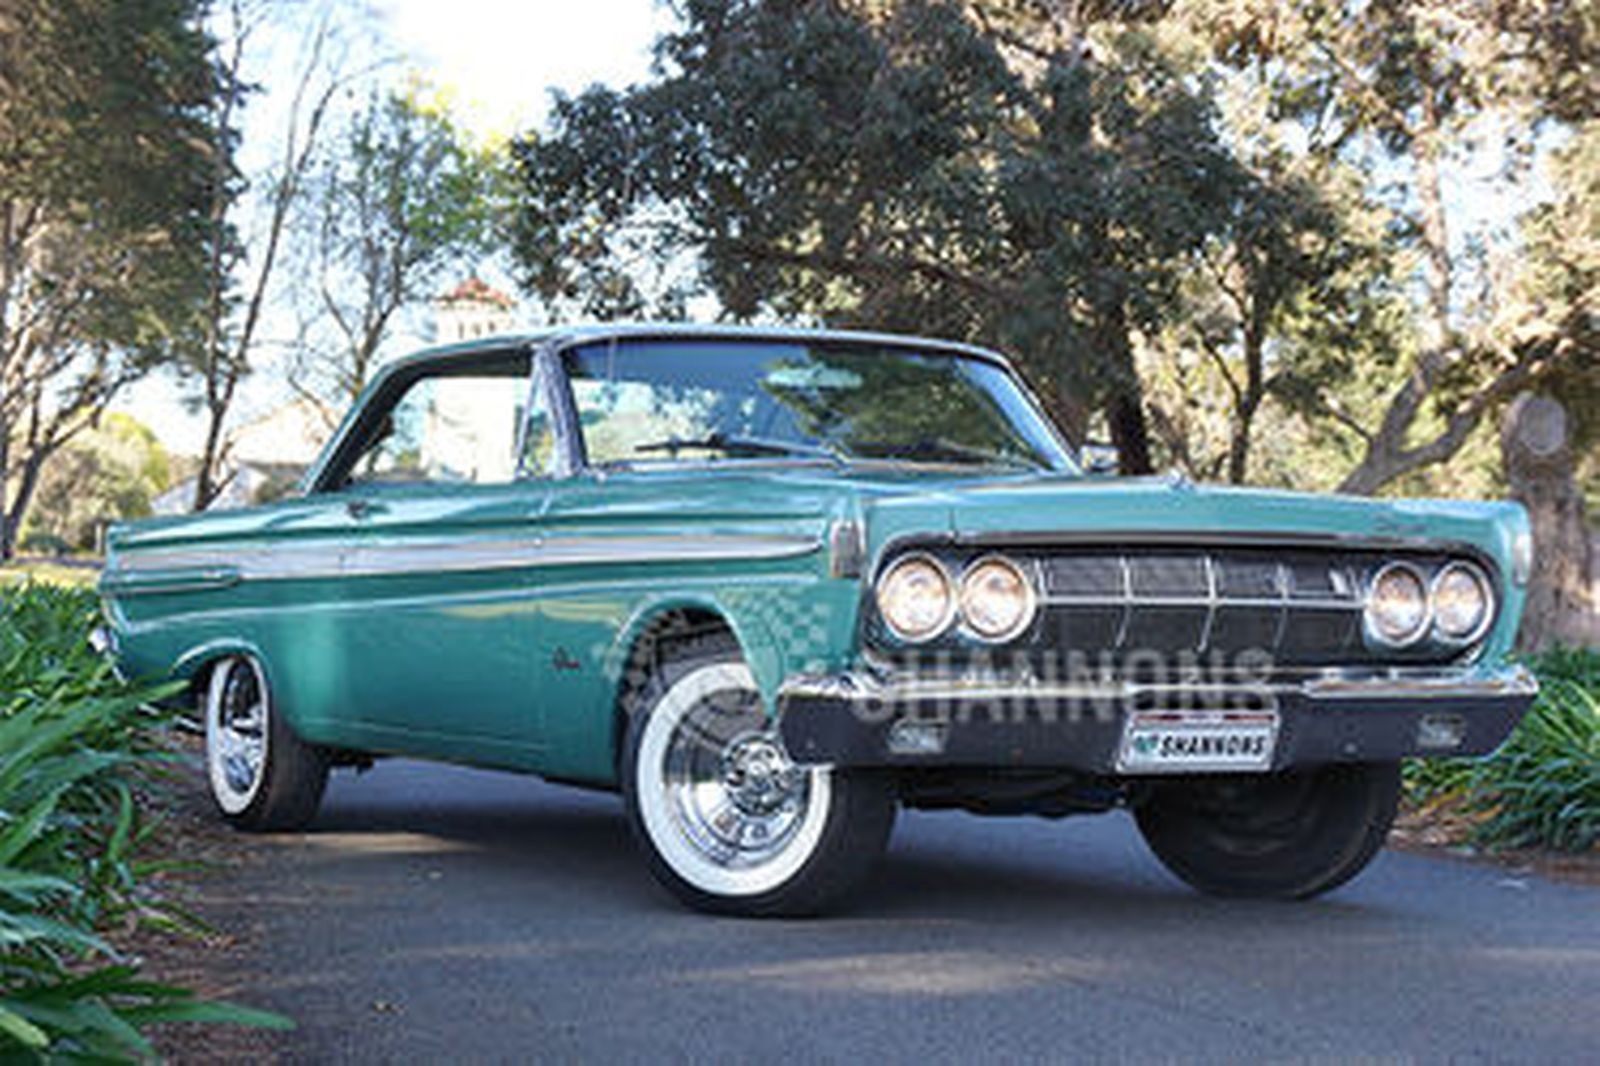 Ford Mercury Comet Caliente Coupe (LHD)